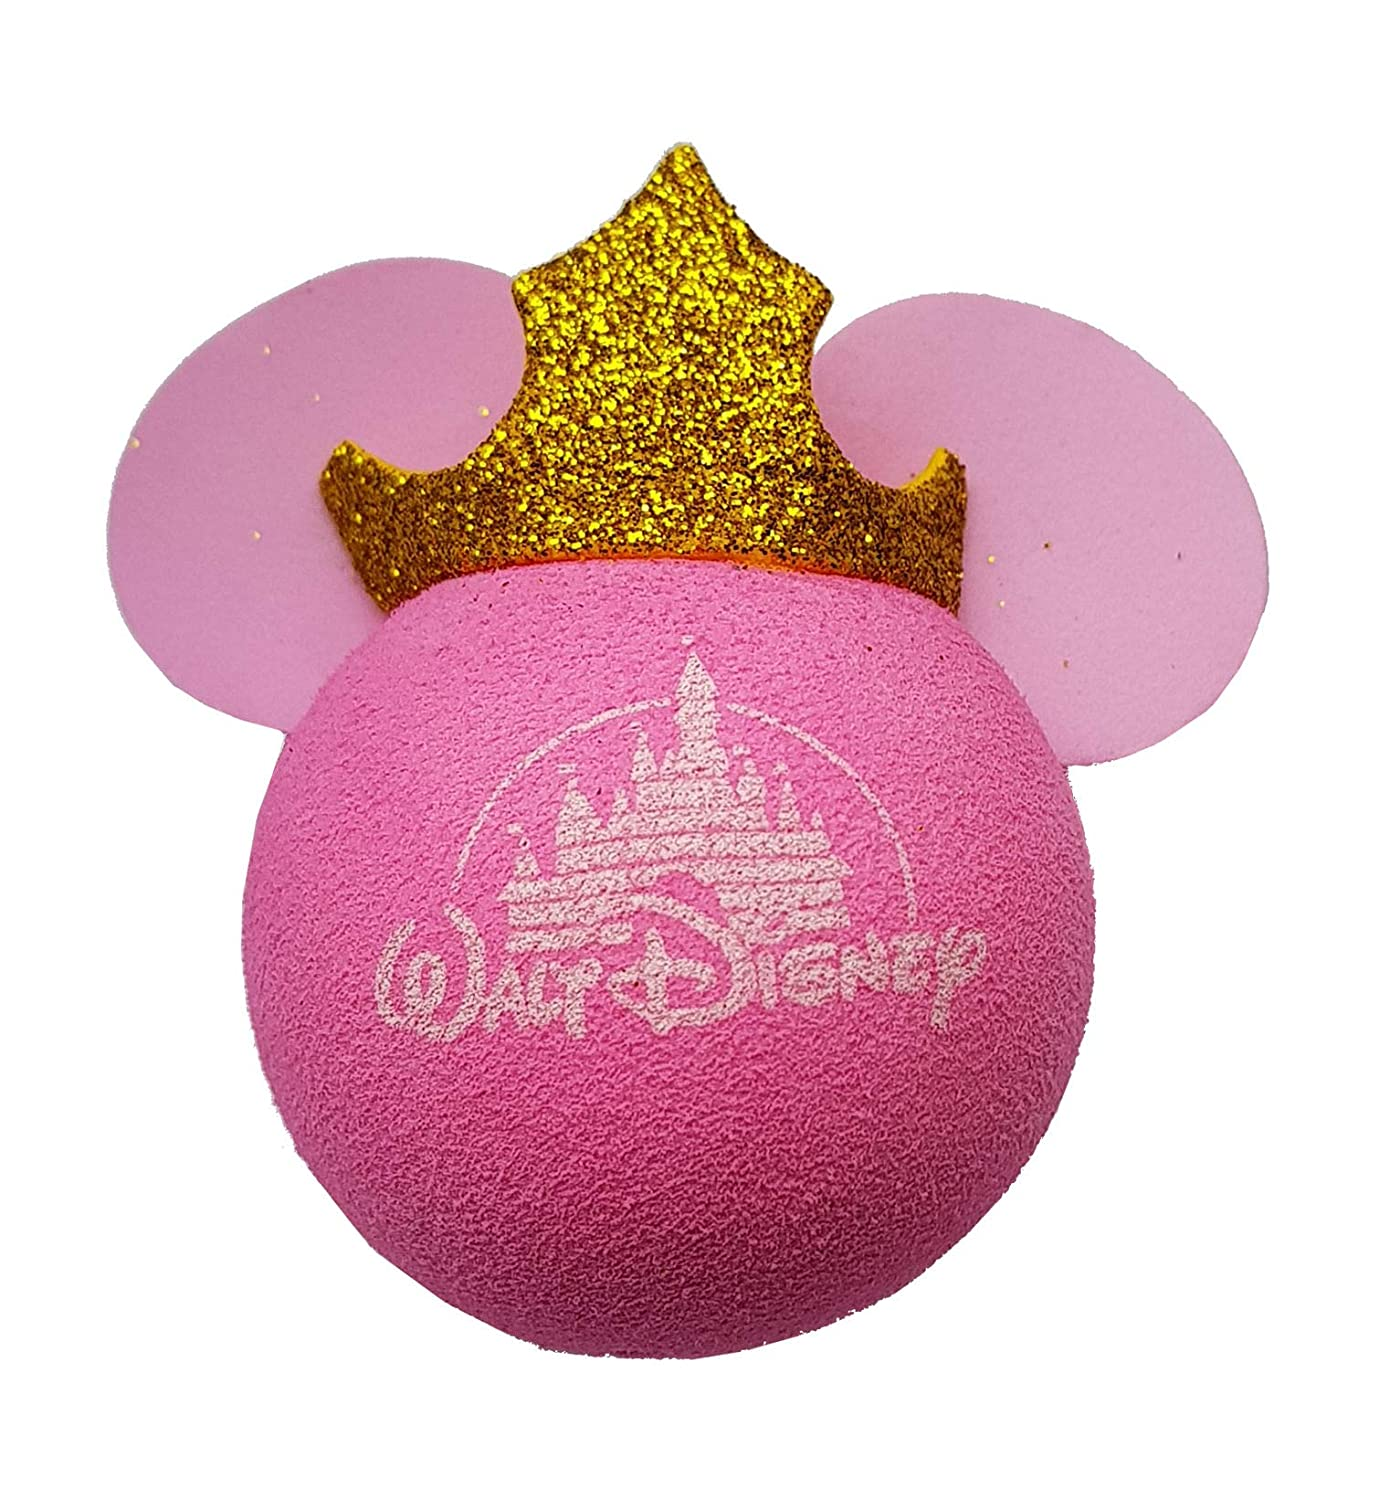 Access-All-Areas Princess Minnie Mouse Pink Aerial Ball Topper Car Locator Finder Mothers Day Girl Birthday Gift